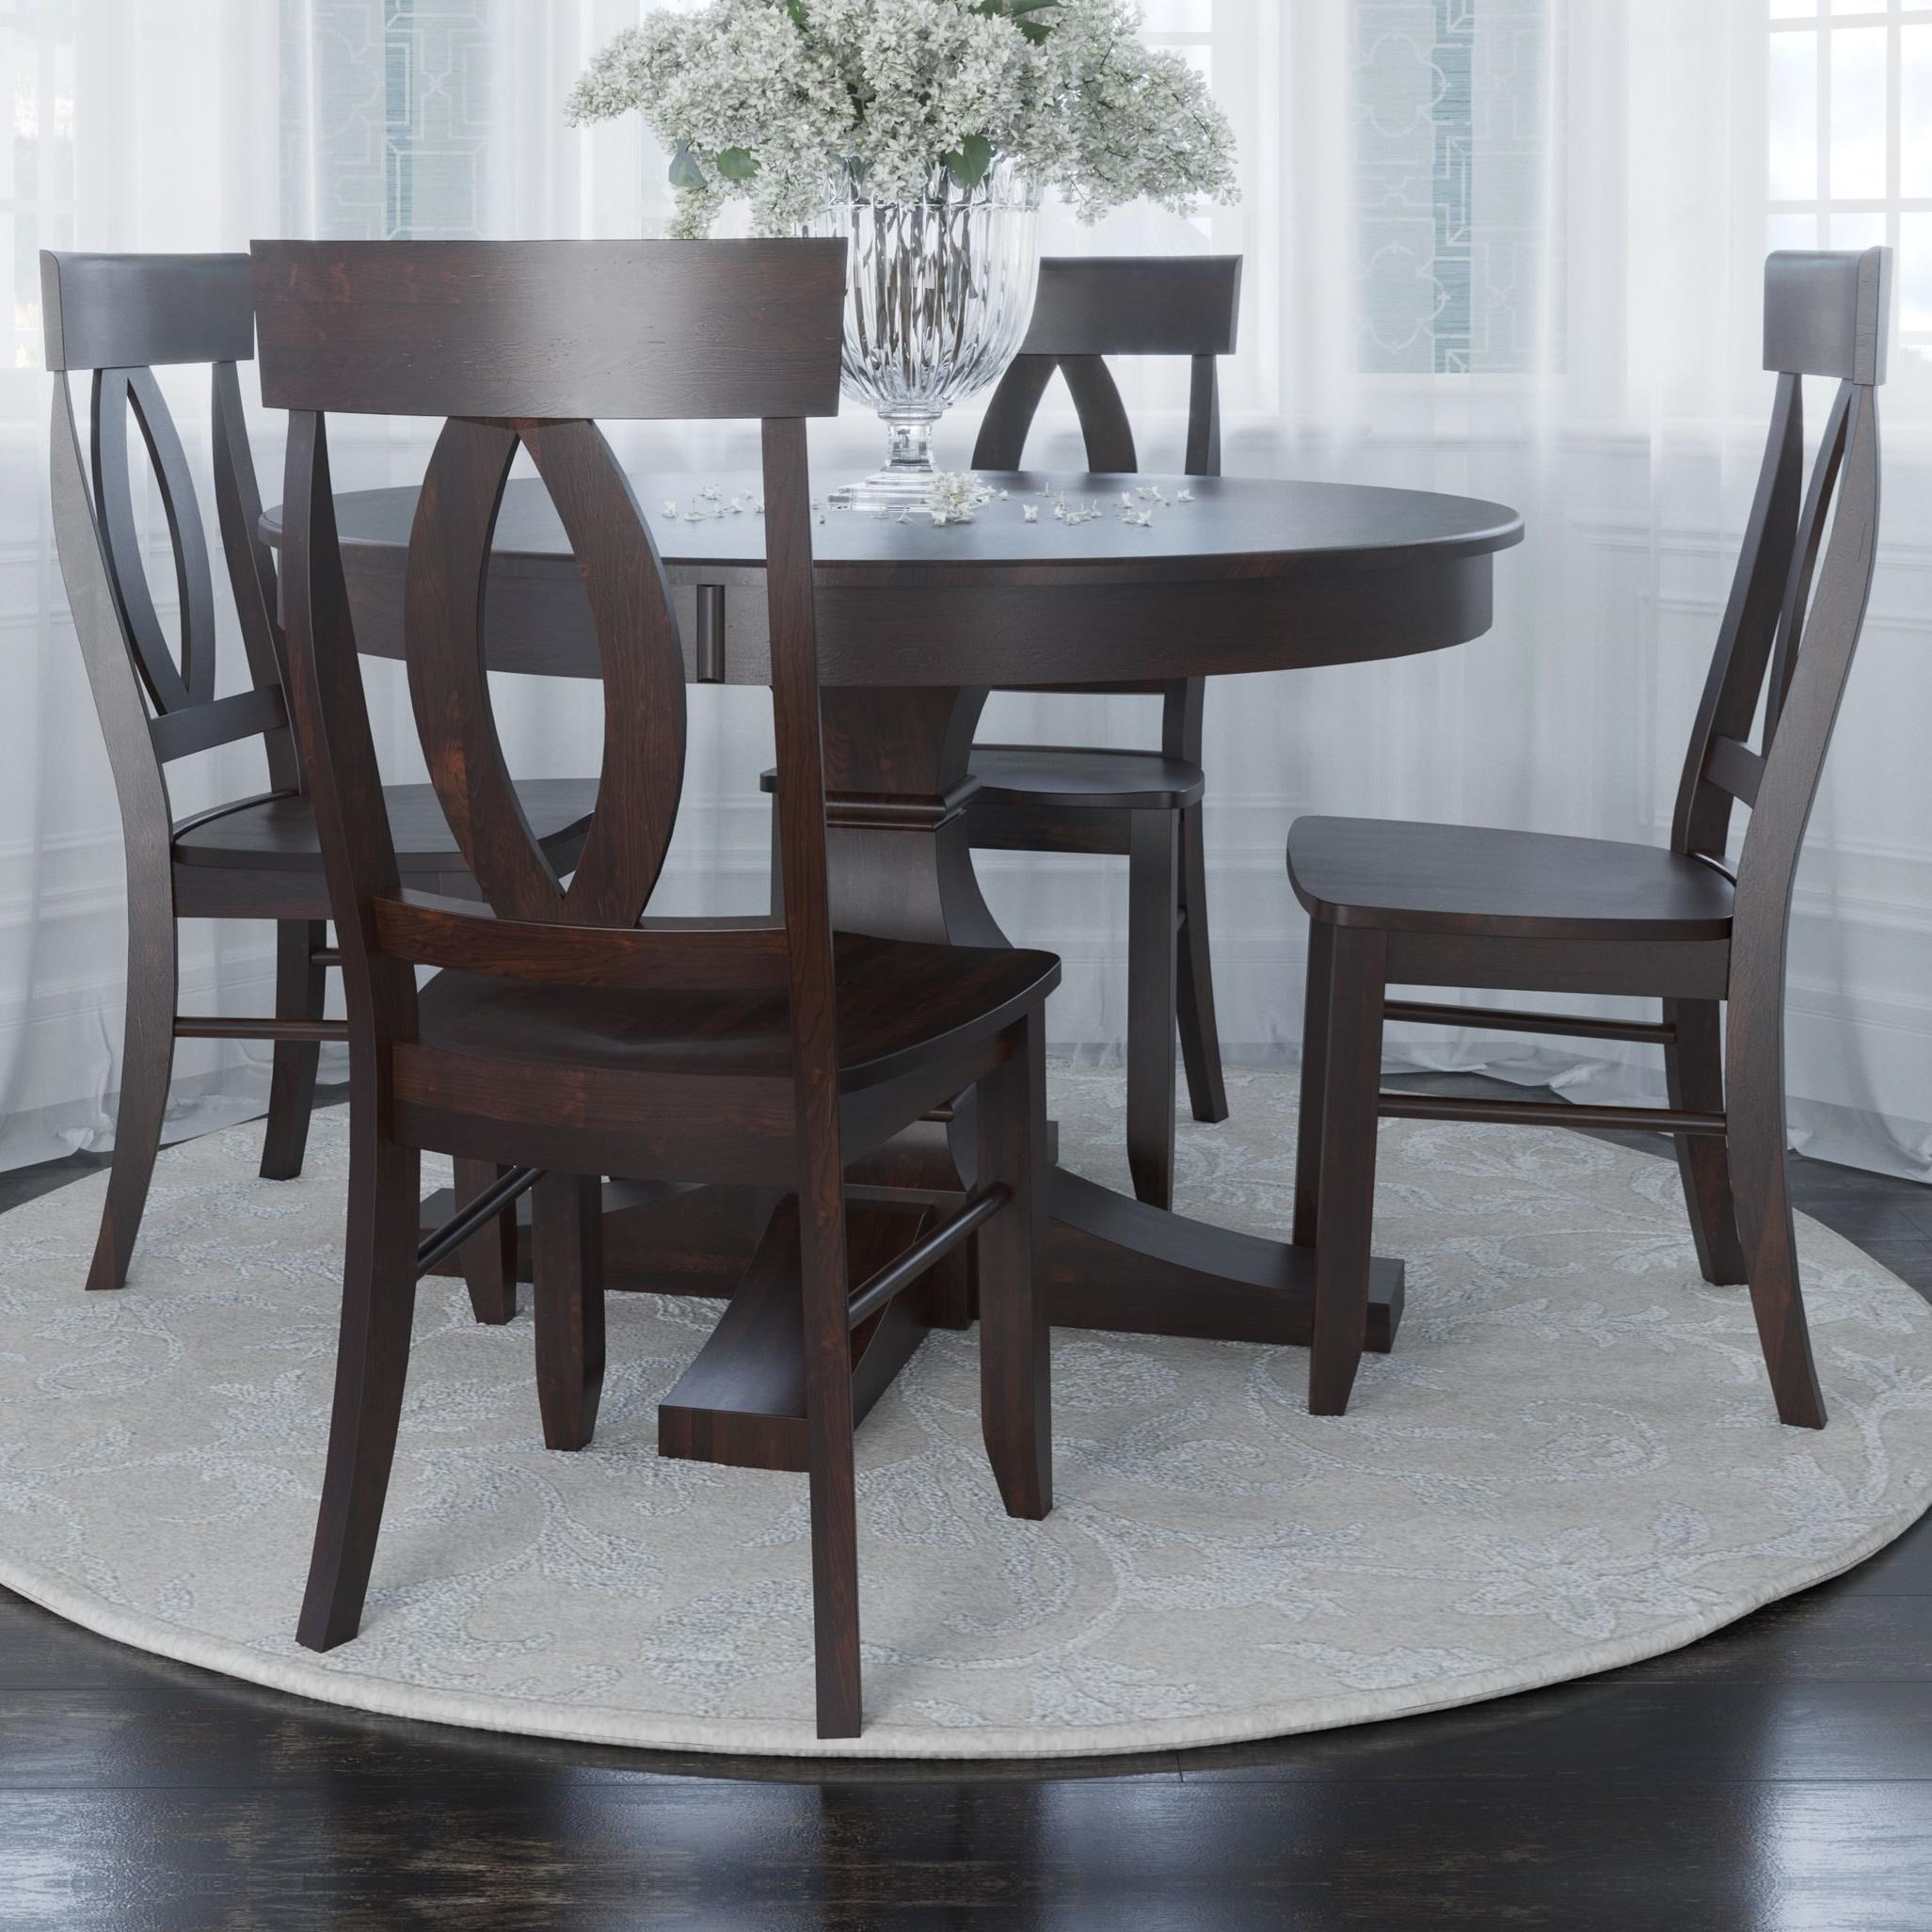 Core - Custom Dining Customizable 5-Piece Round Dining Table Set by Canadel at Furniture and ApplianceMart